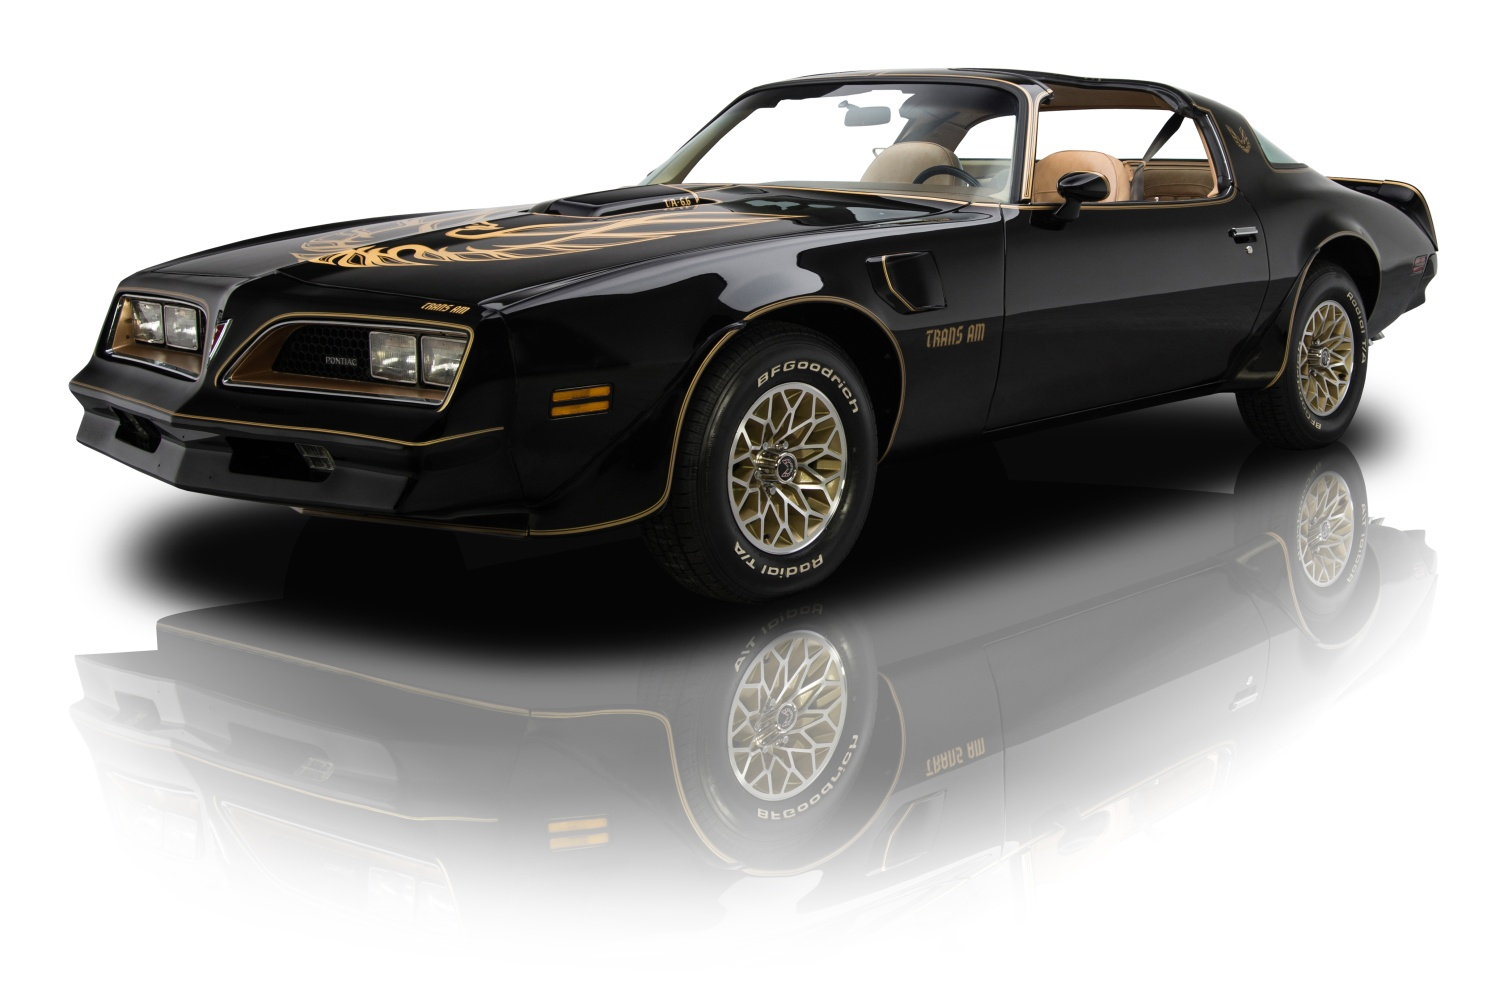 Smokey and the Bandit 1977 Pontiac Trans Am